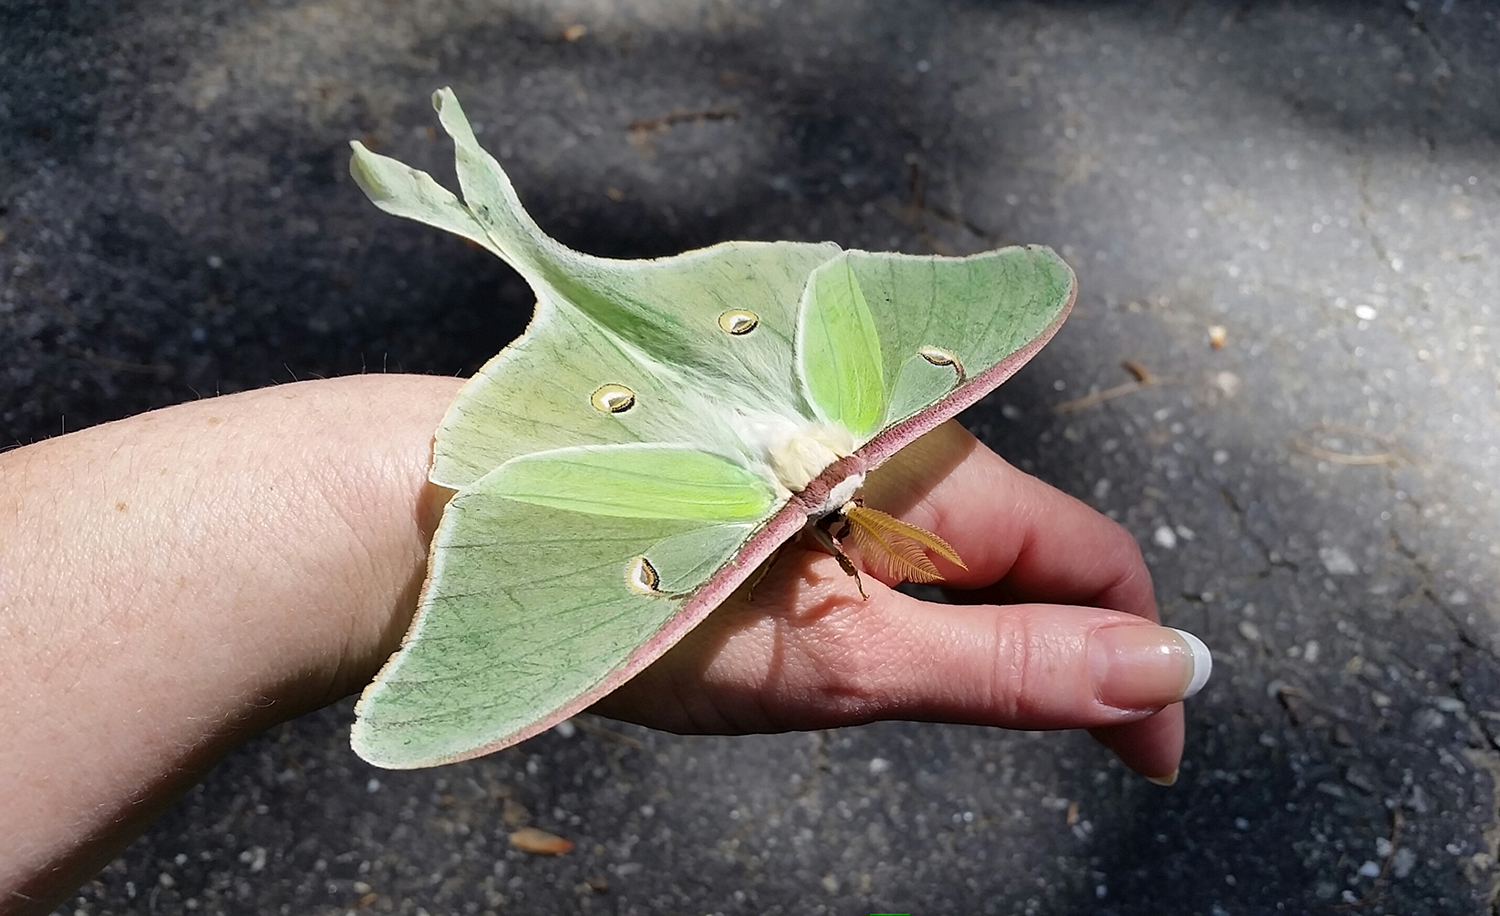 A luna moth took a liking to young Johanna Barne during a family gathering on July 4 in Newcastle. With her other hand, she took the photo with a Samsung phone.